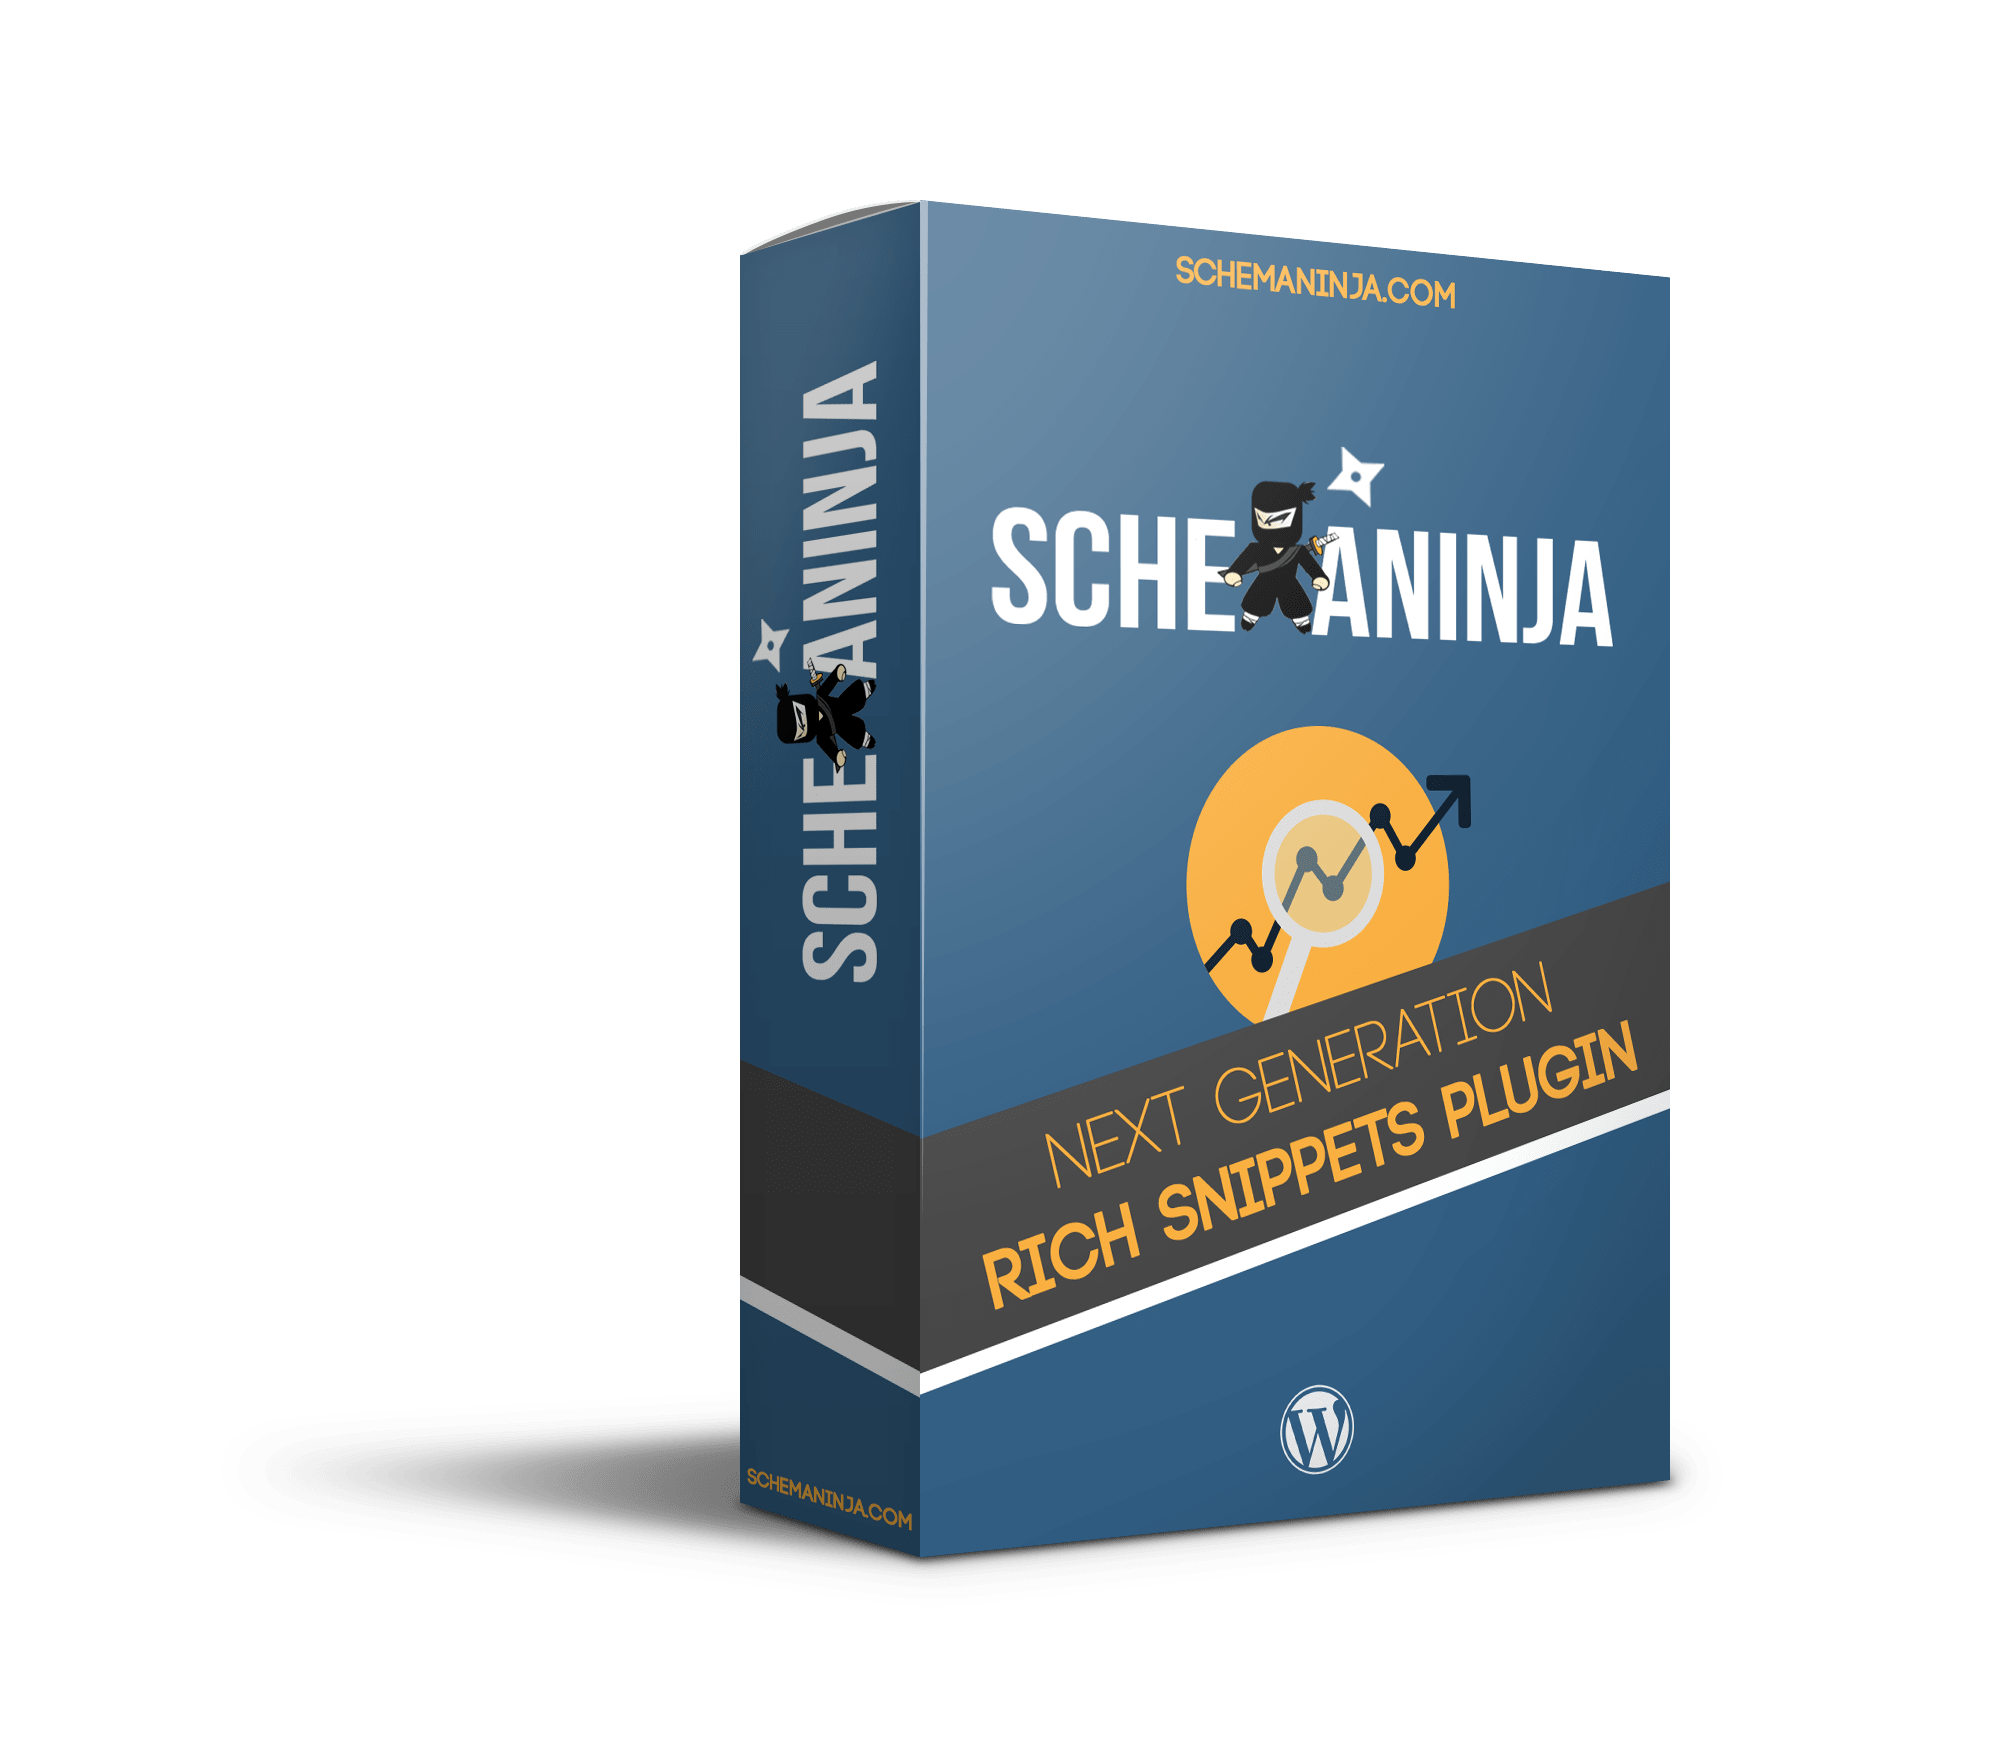 Schemaninja ebook